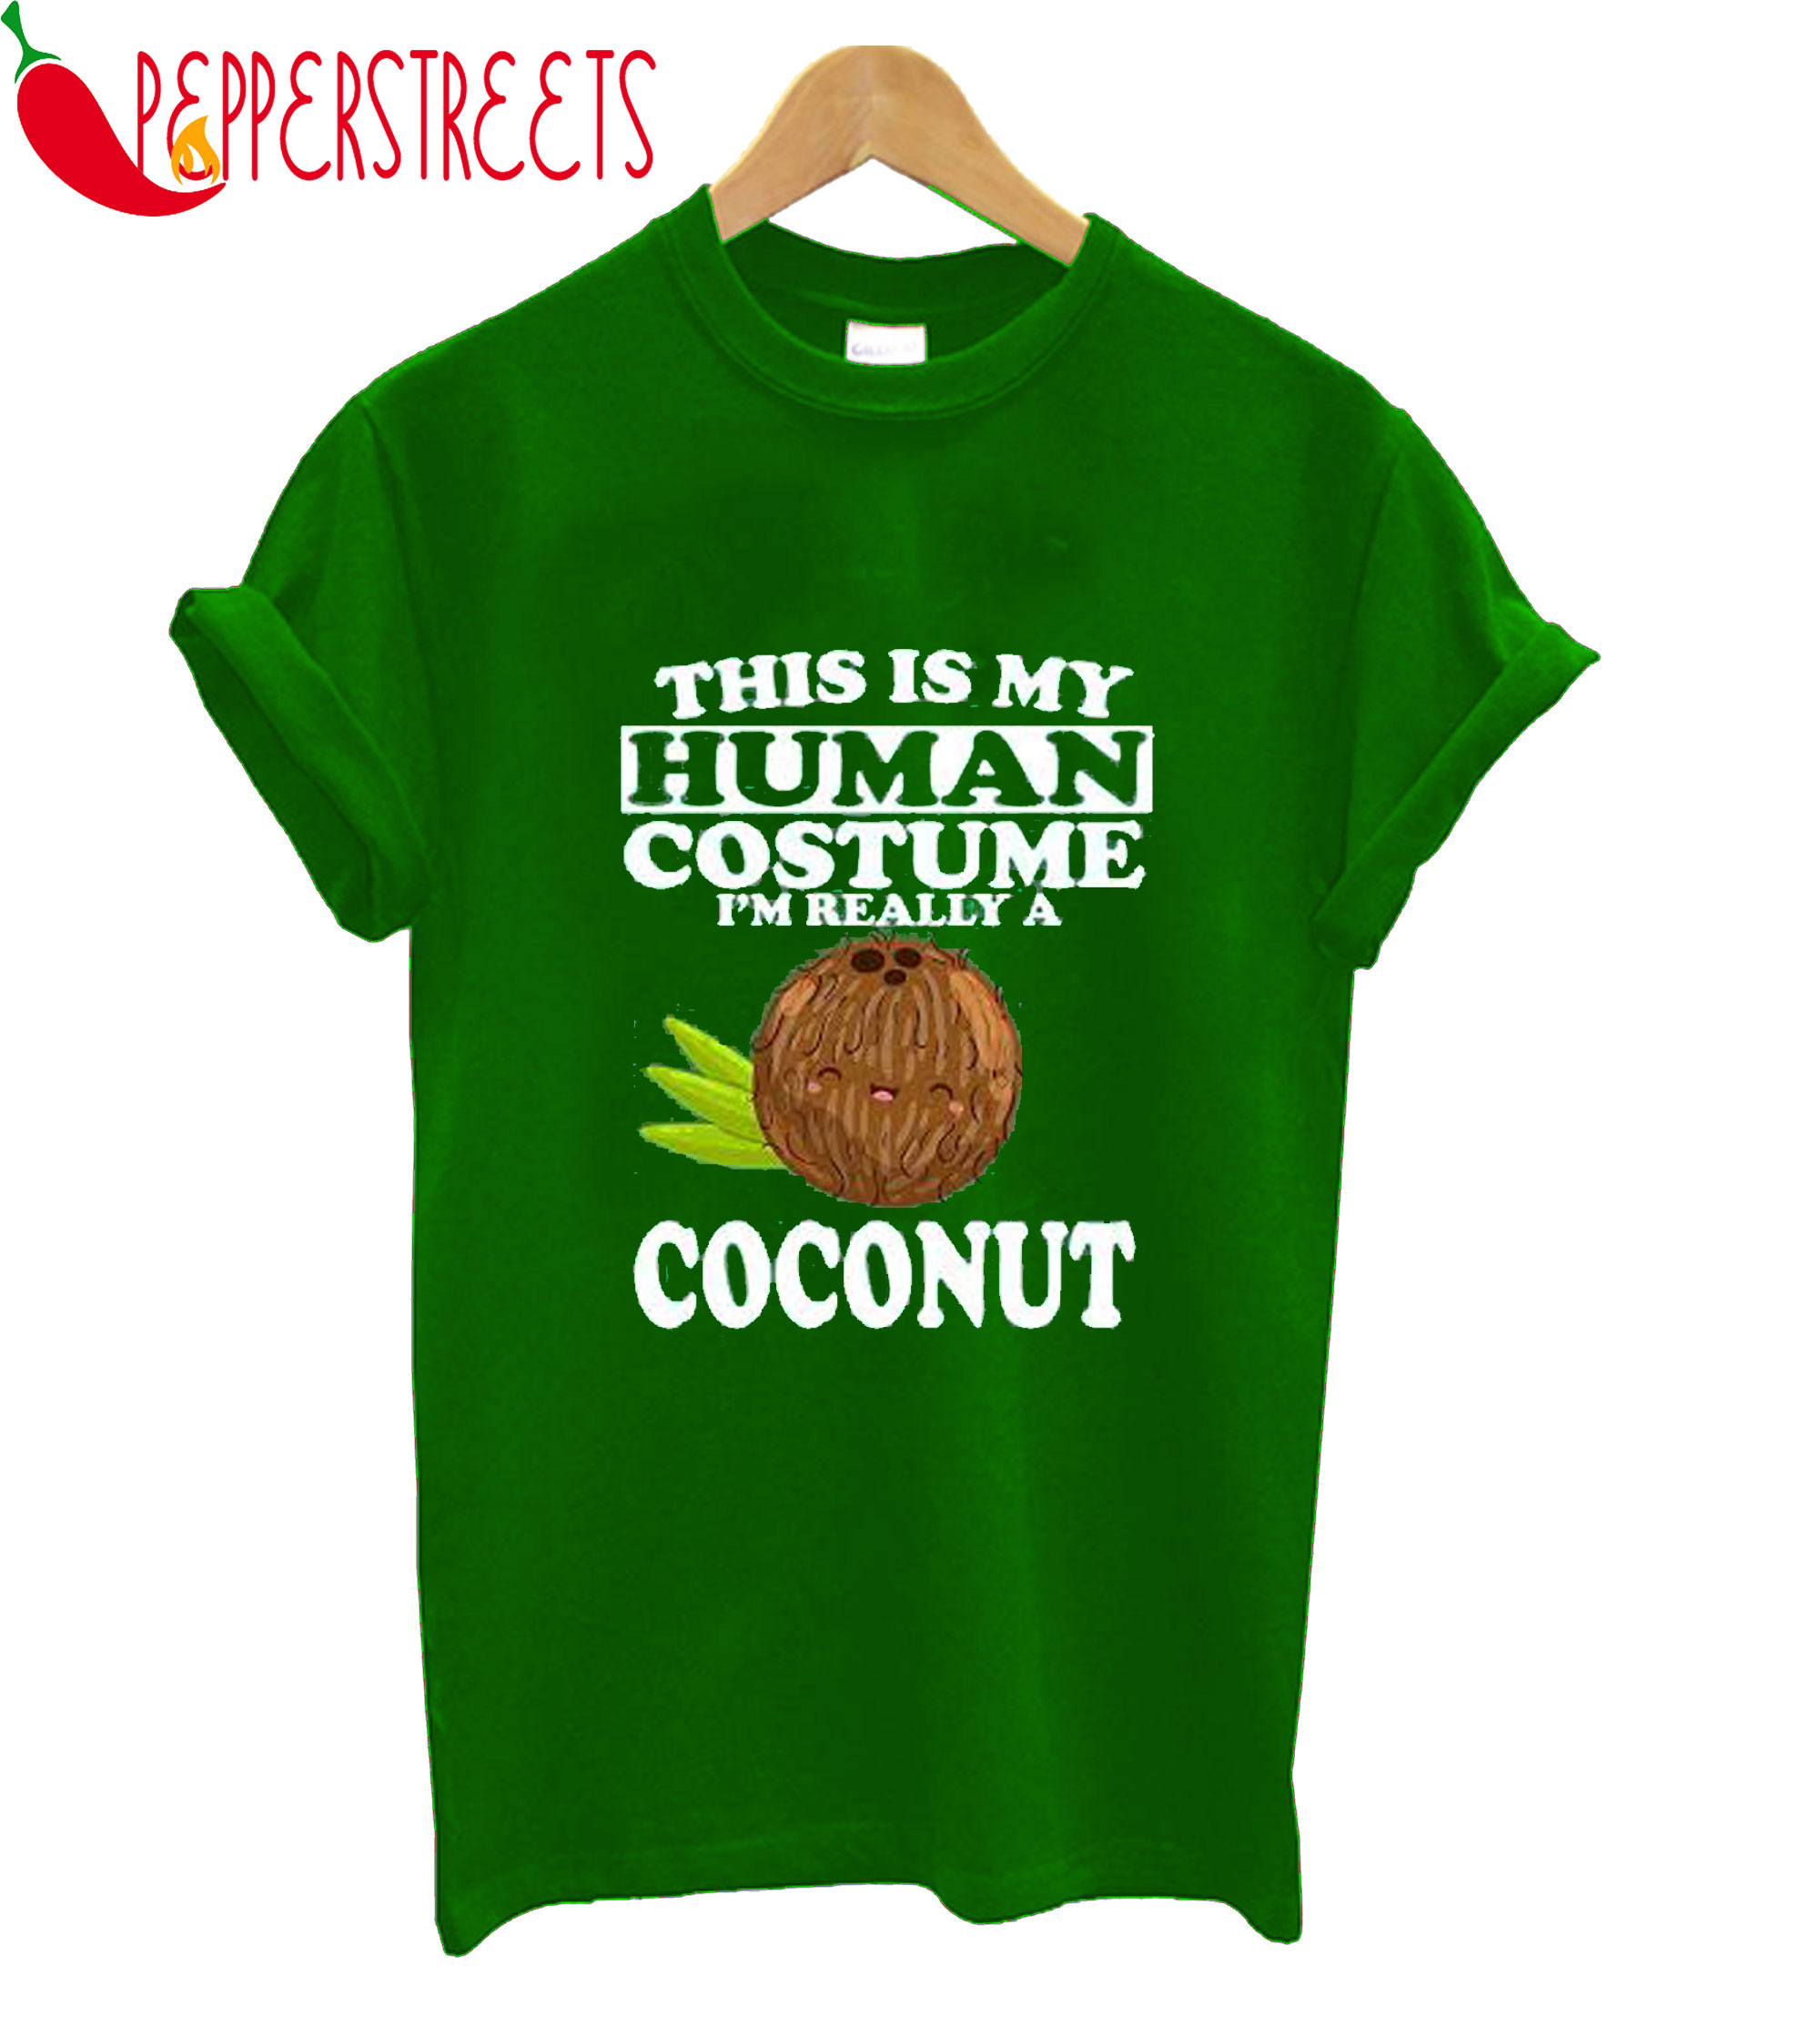 This Is My Human Costume I'm Reallity A Coconut T-Shirt